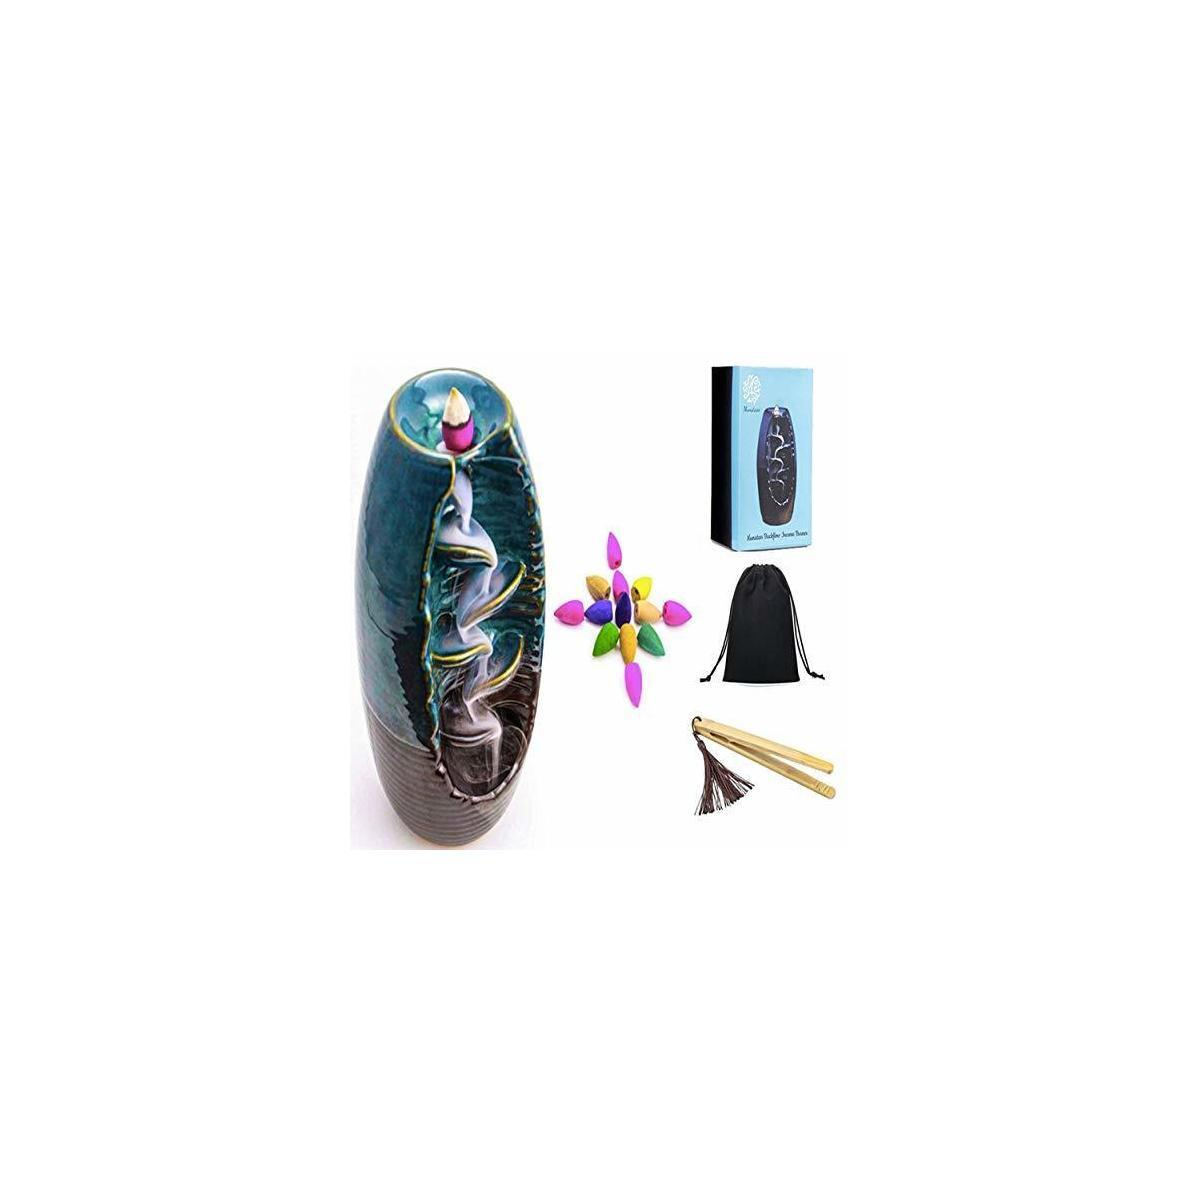 Munatass Ceramic Backflow Incense Holder +100 Free Incense Cones+Bamboo Tongs+Velvet Pouch-Handmade Waterfall Incense Burner Ornament Perfect for Aromatherapy, Home Decor, Yoga, Spa & Meditation